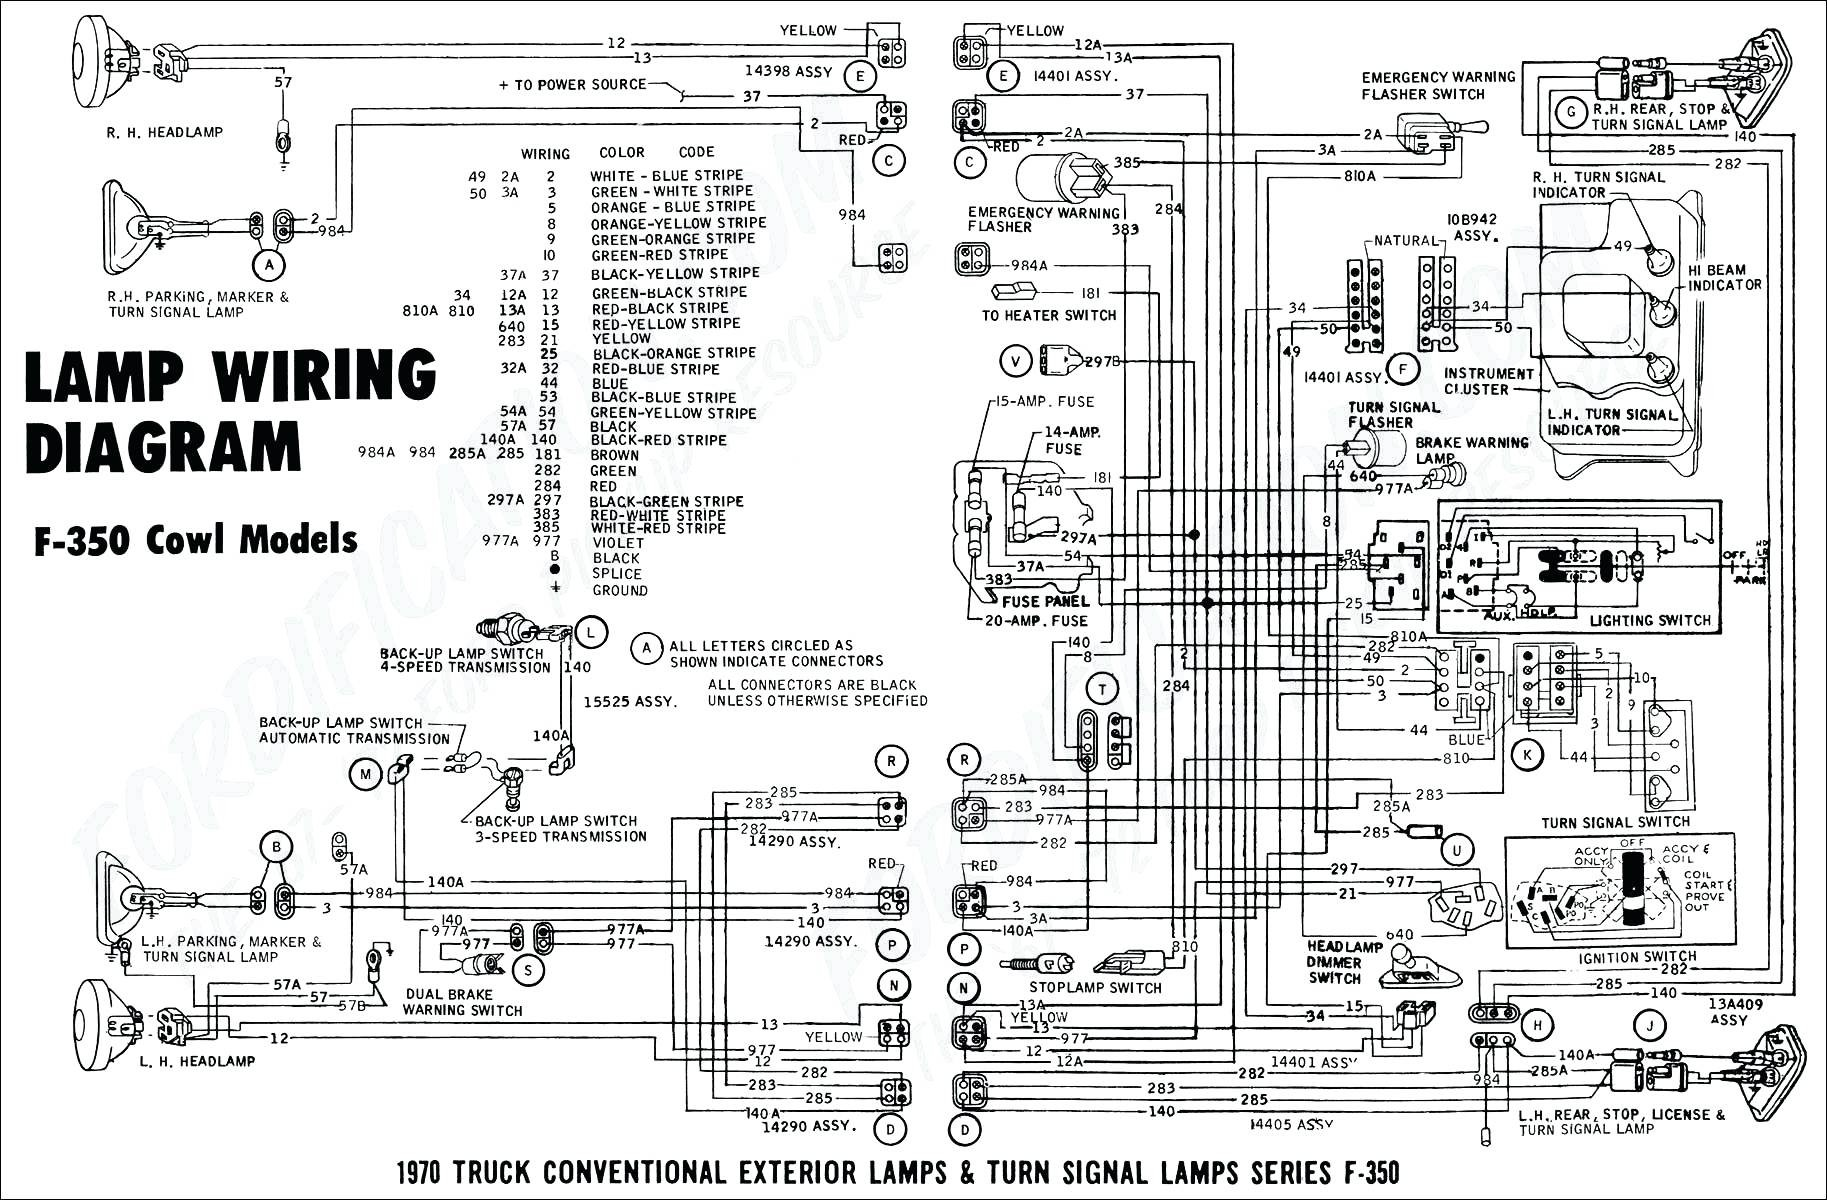 2001 ford escort engine diagram 1997 ford f 250 wiring diagrams also rh detoxicrecenze com